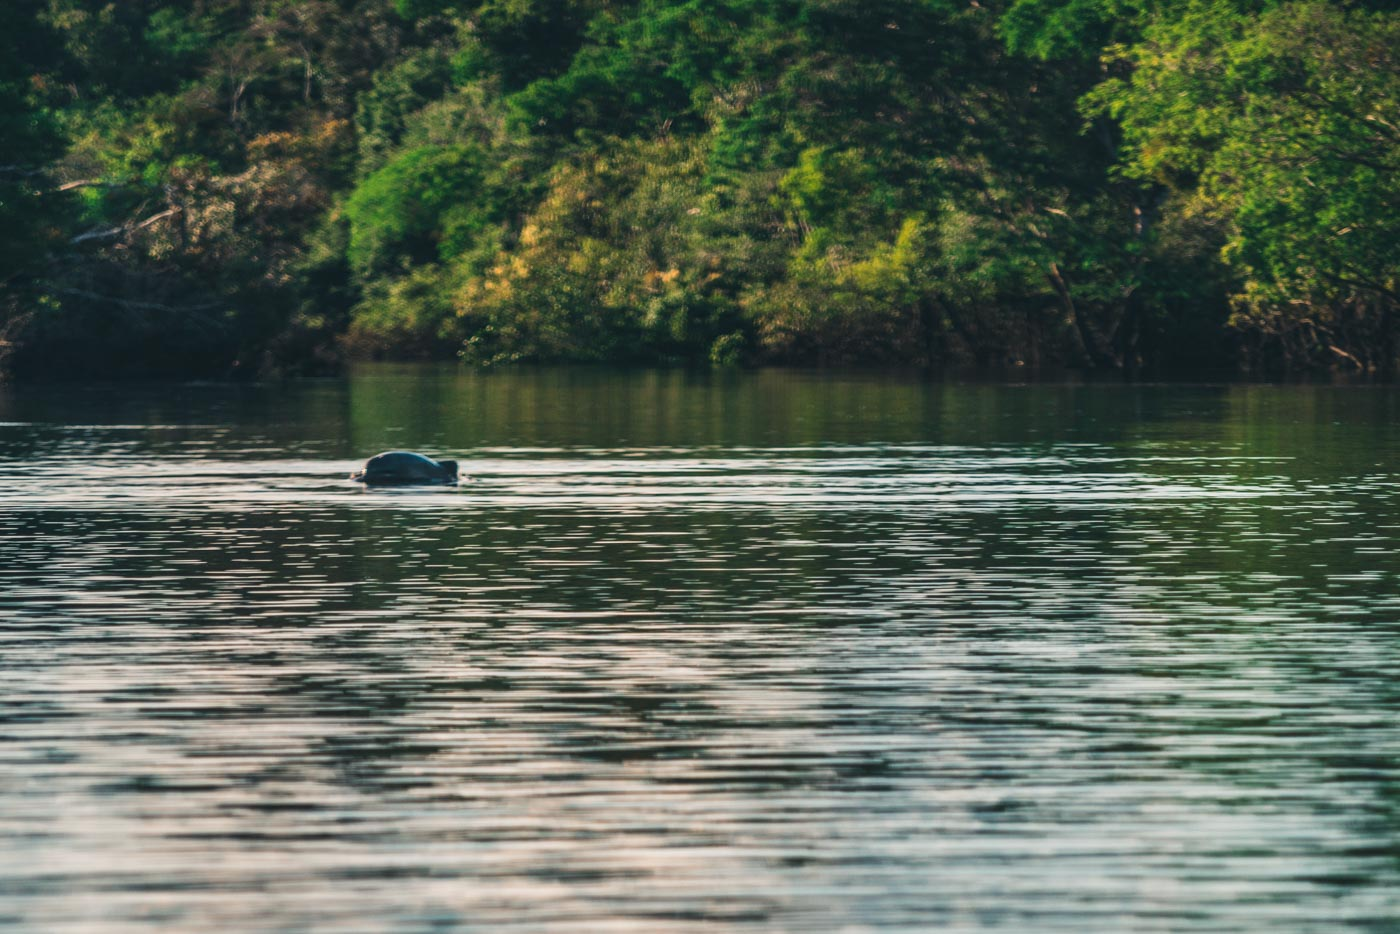 Amazon river dolphin breaches the water on Charo Lake in the Amazon